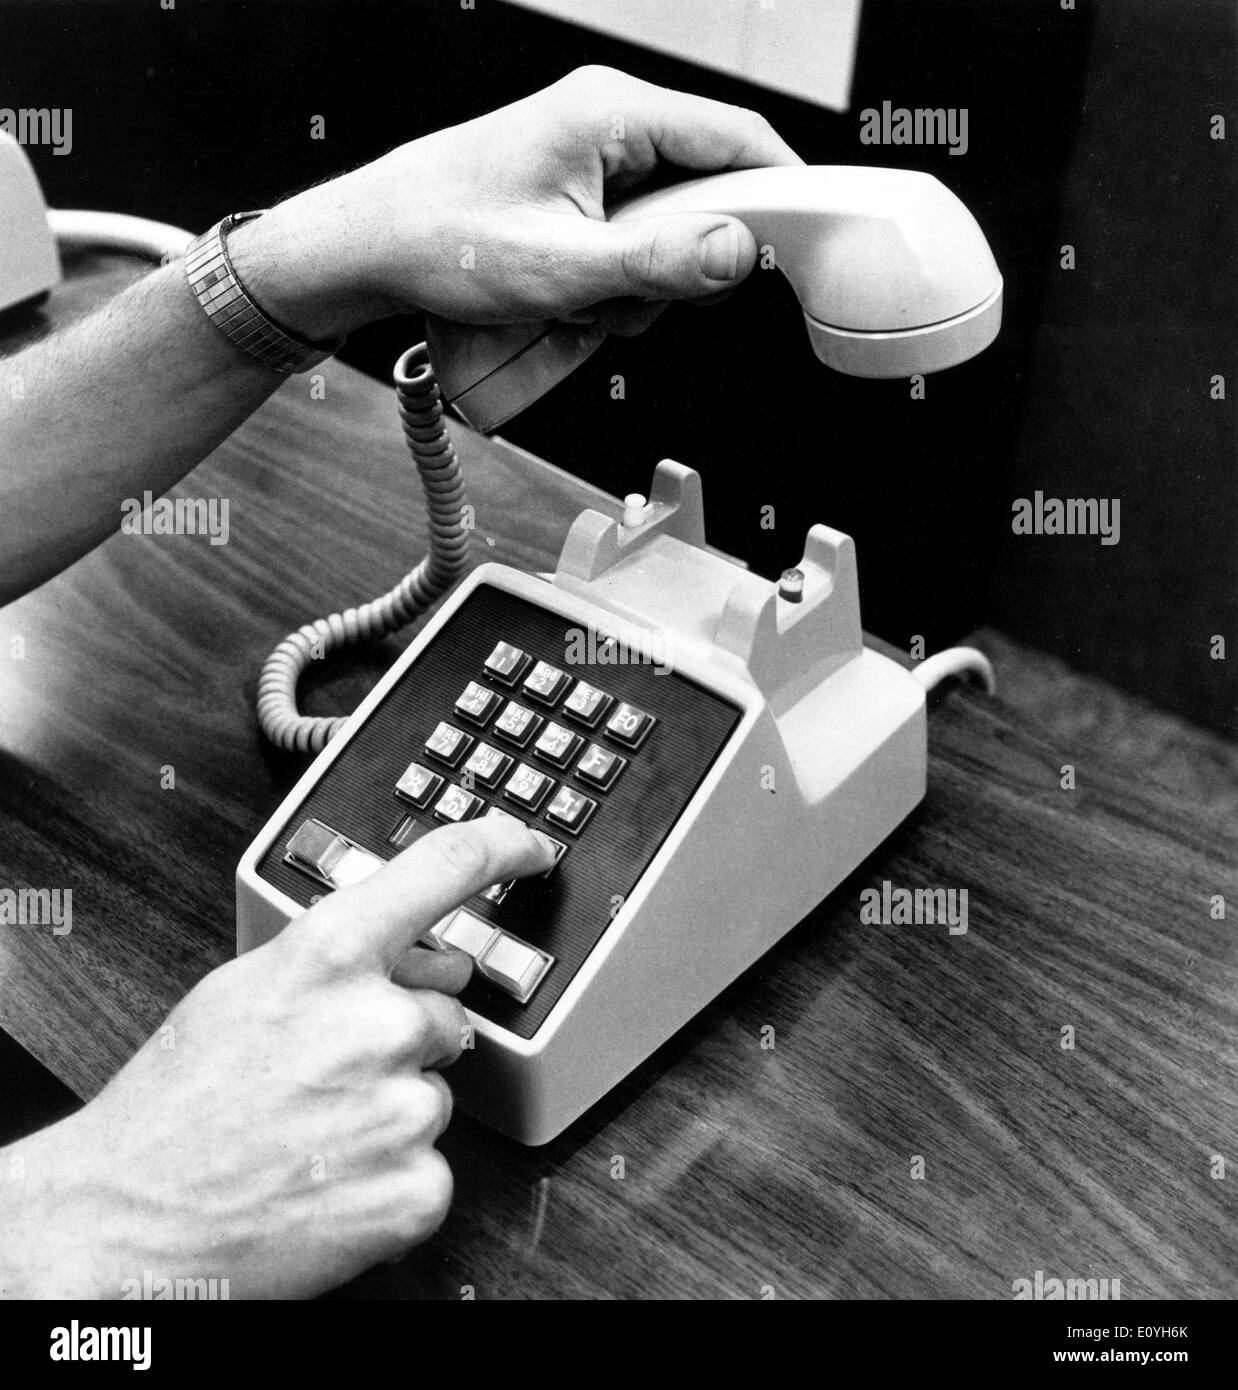 Military version of Touch Tone telephone - Stock Image